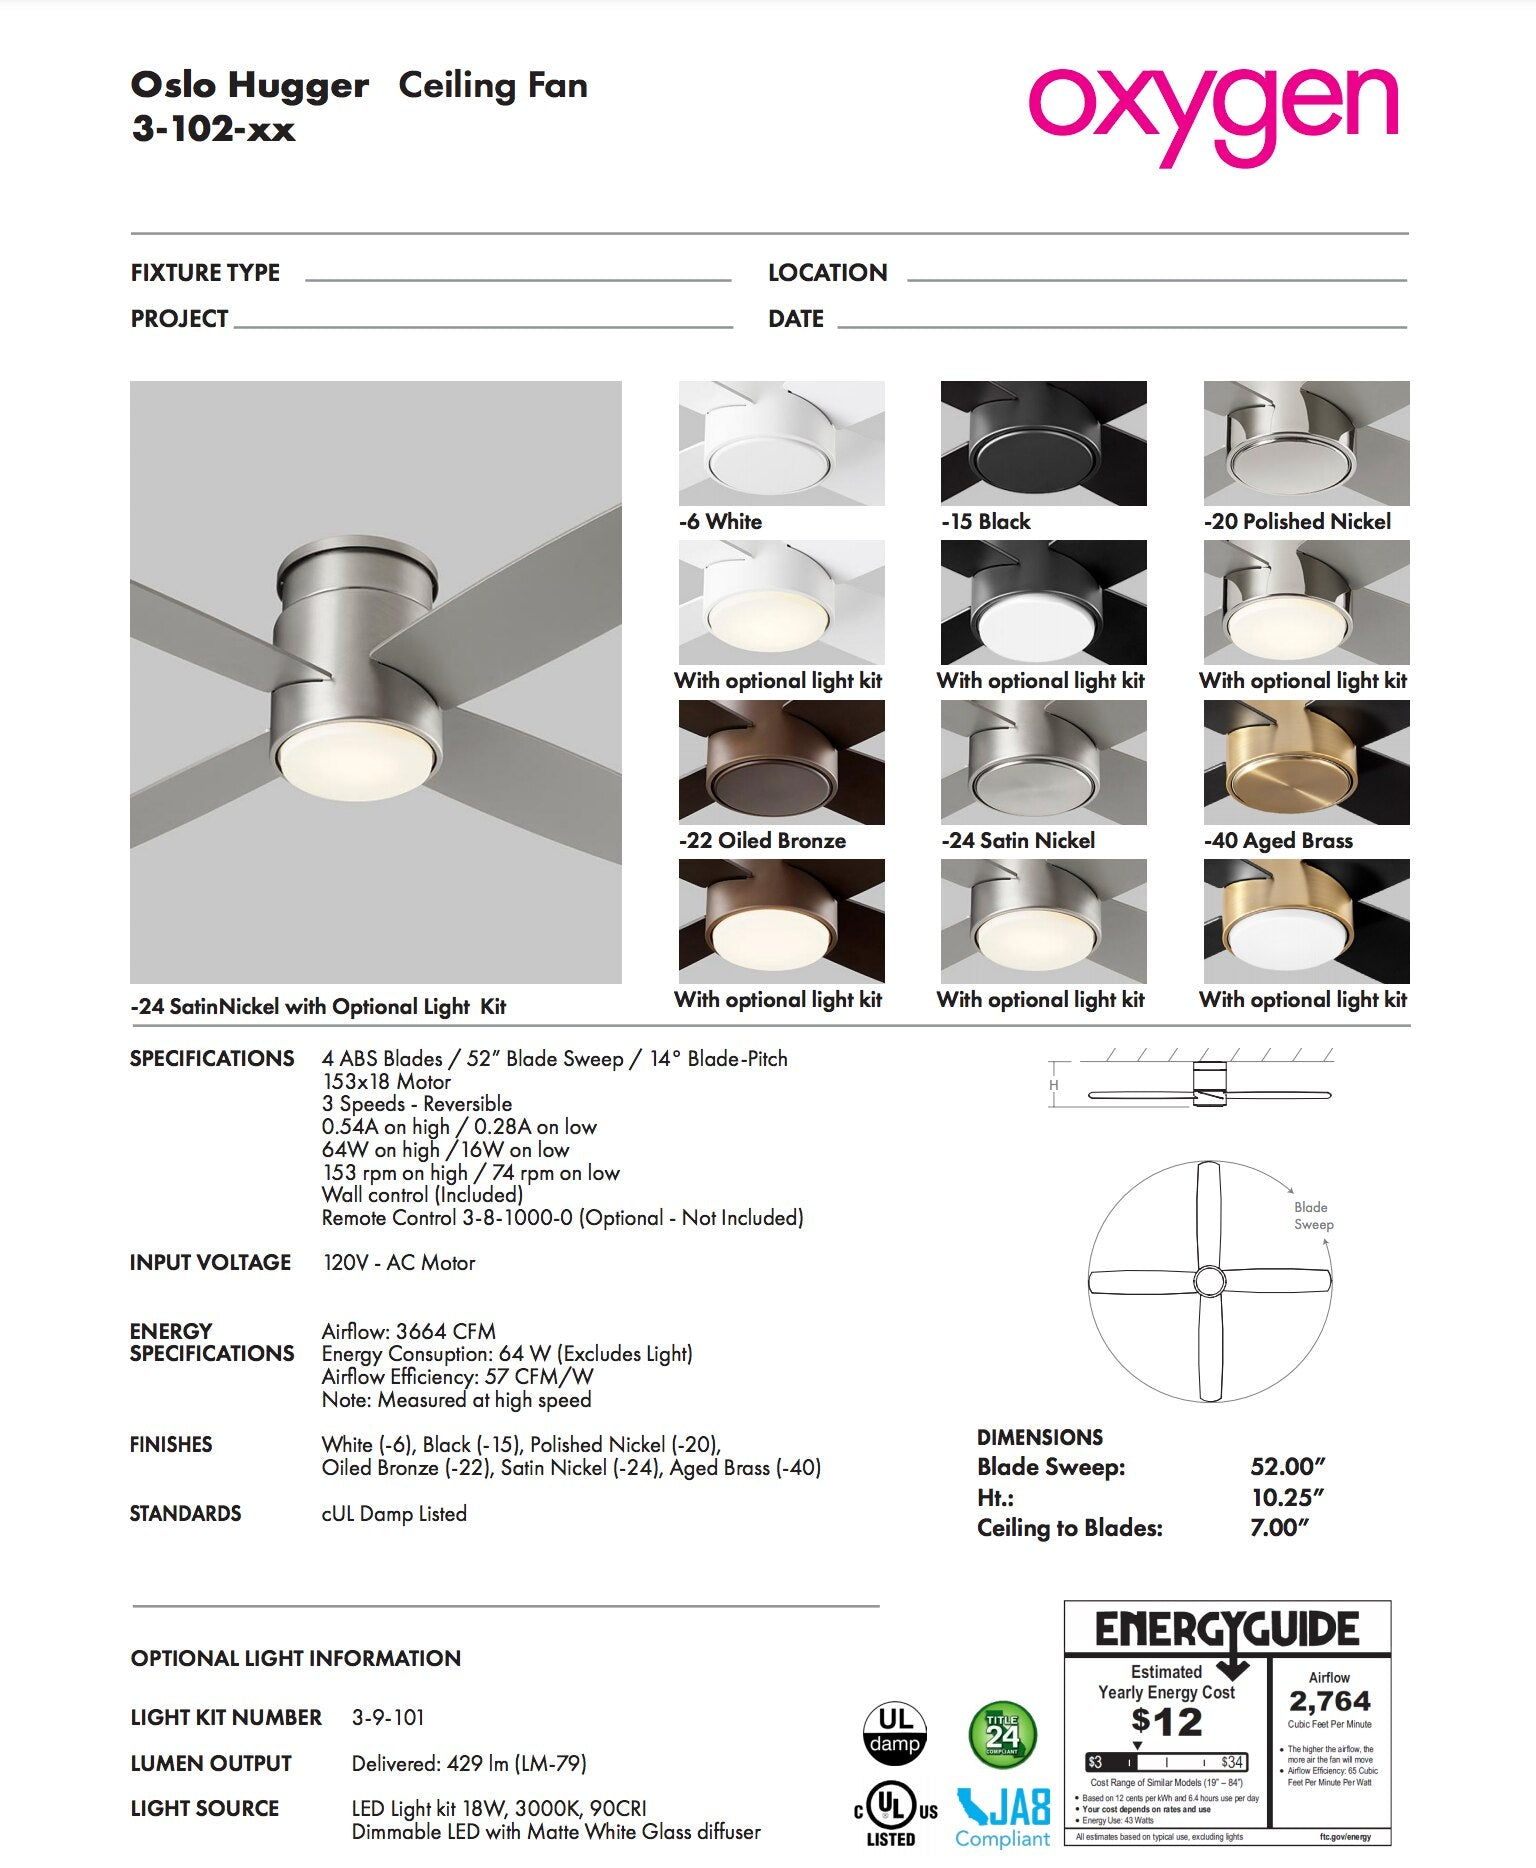 Oxygen oslo hugger ceiling fan Oxygen Lighting 3-102-40 Spec Sheet